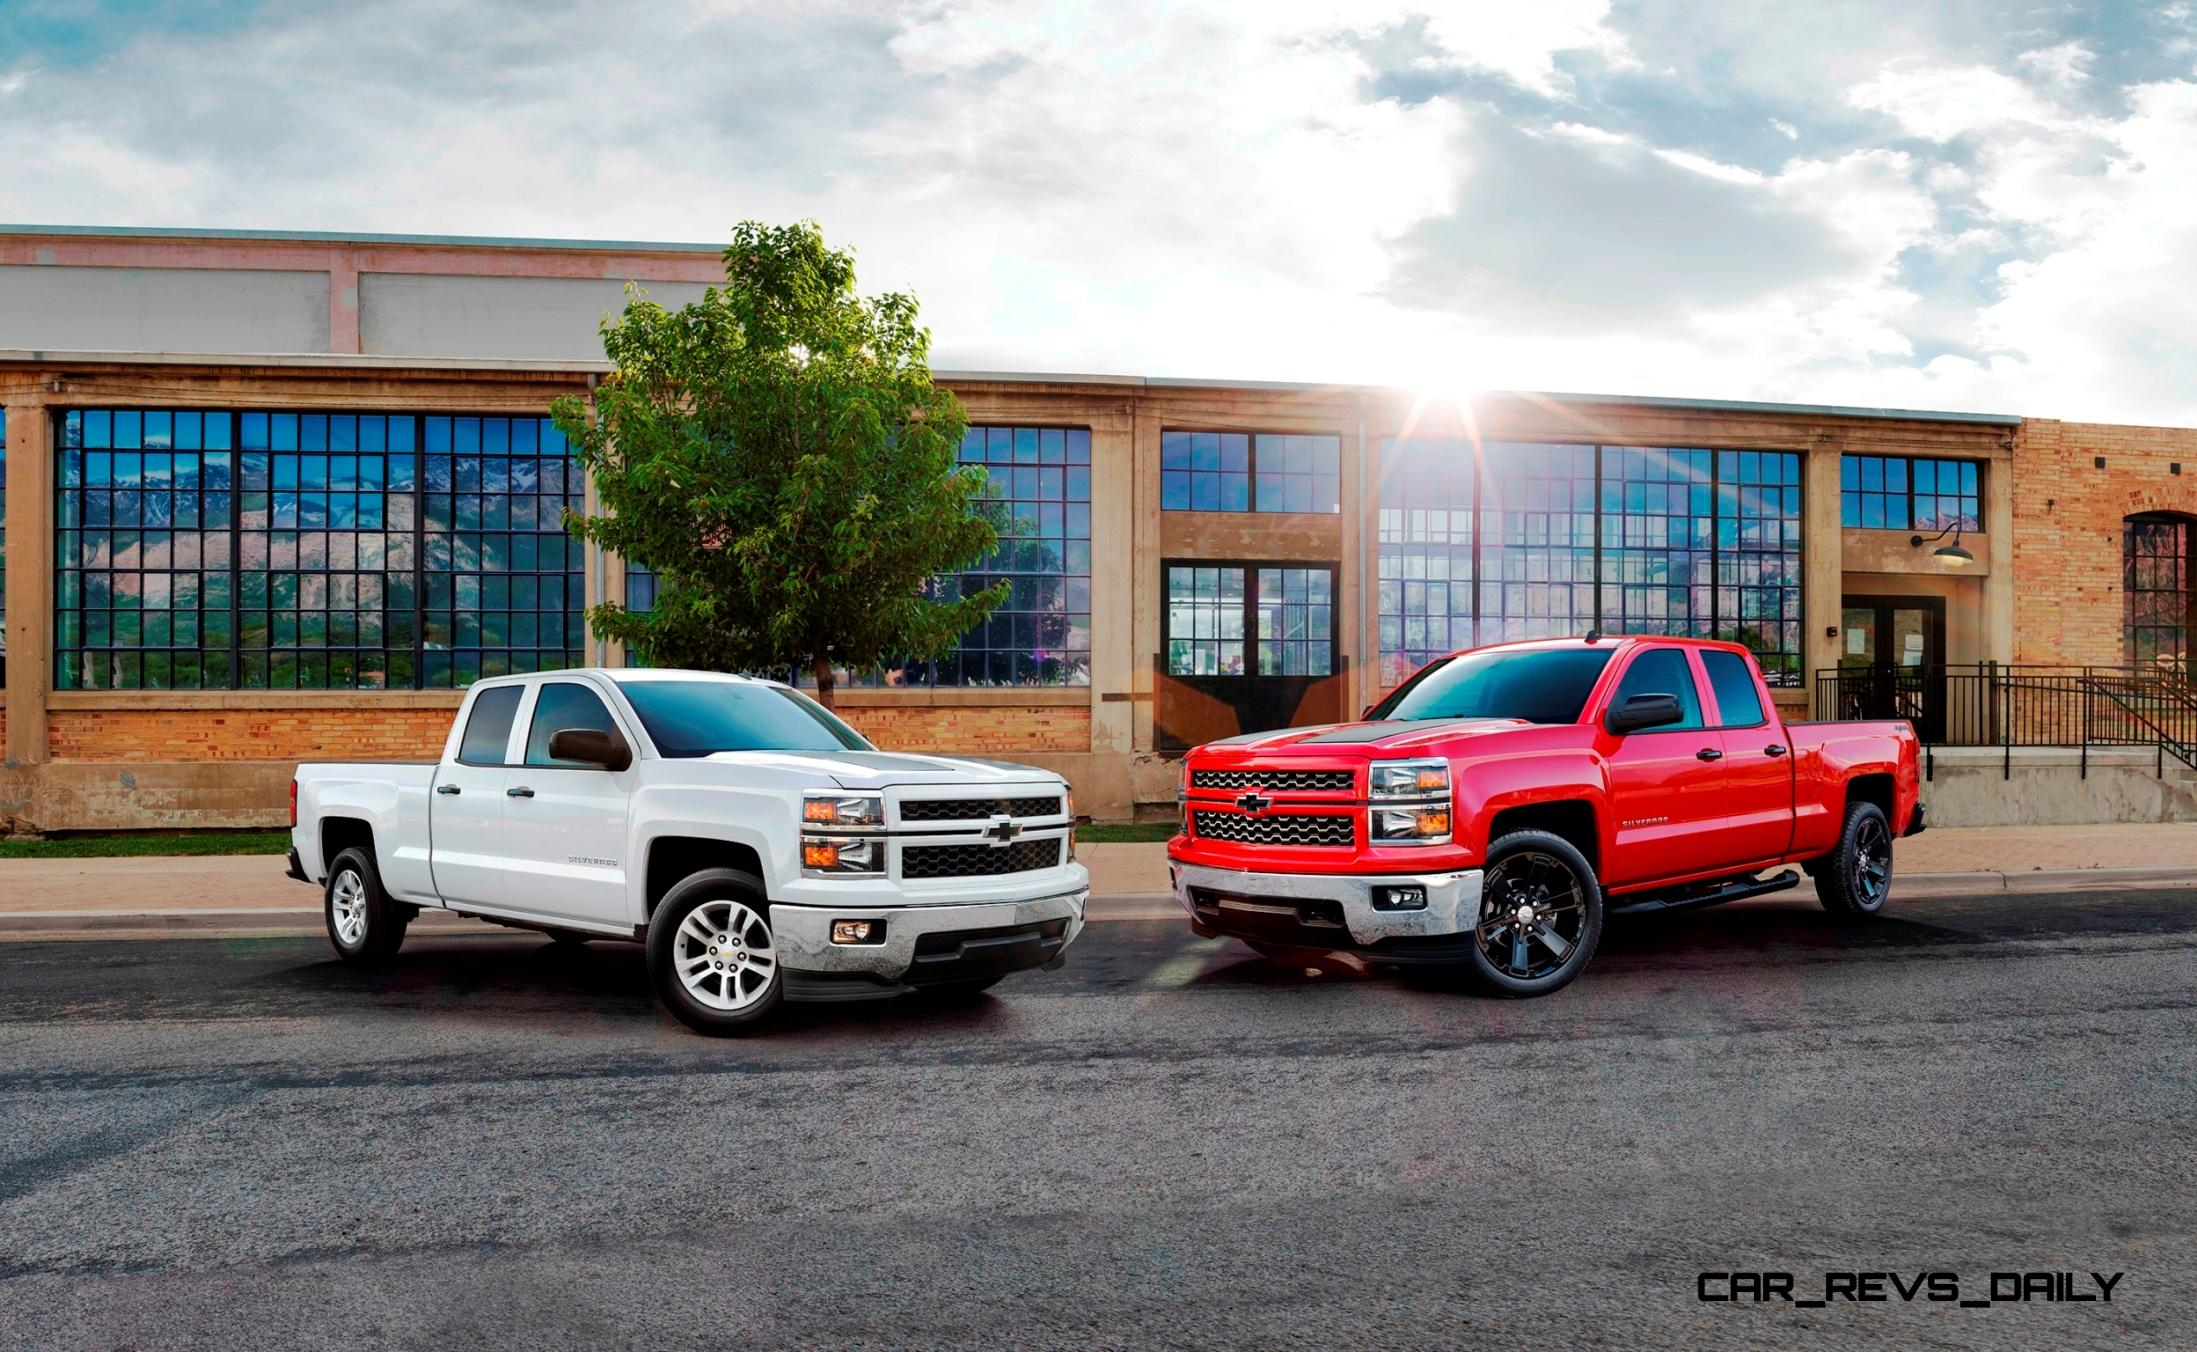 2015 Chevrolet Silverado 1500 Crew Cab Rally Edition Adds